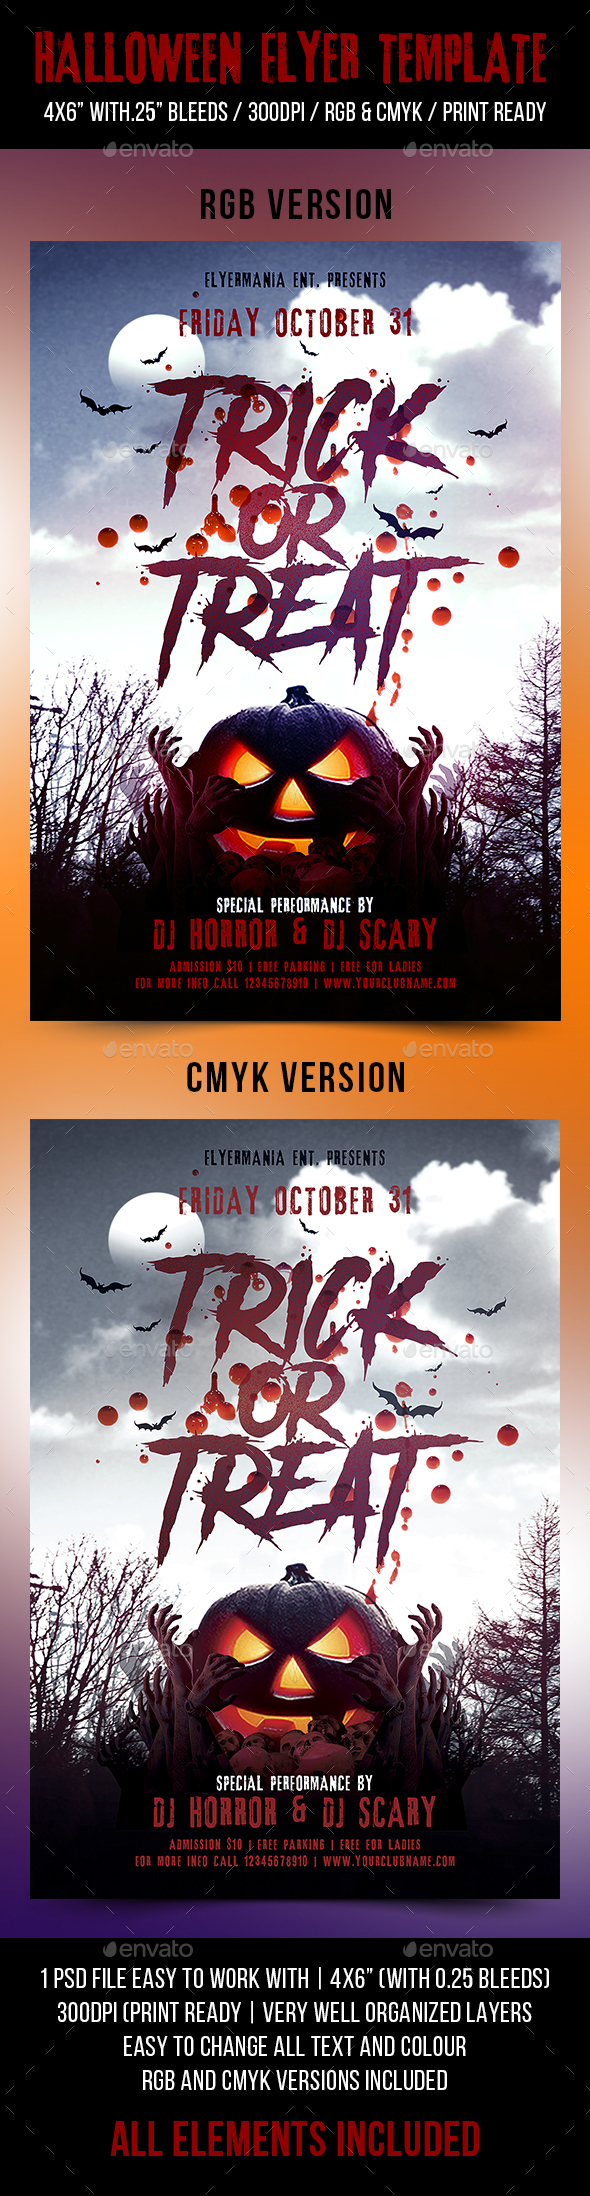 Halloween Flyer Template - Flyers Print Templates